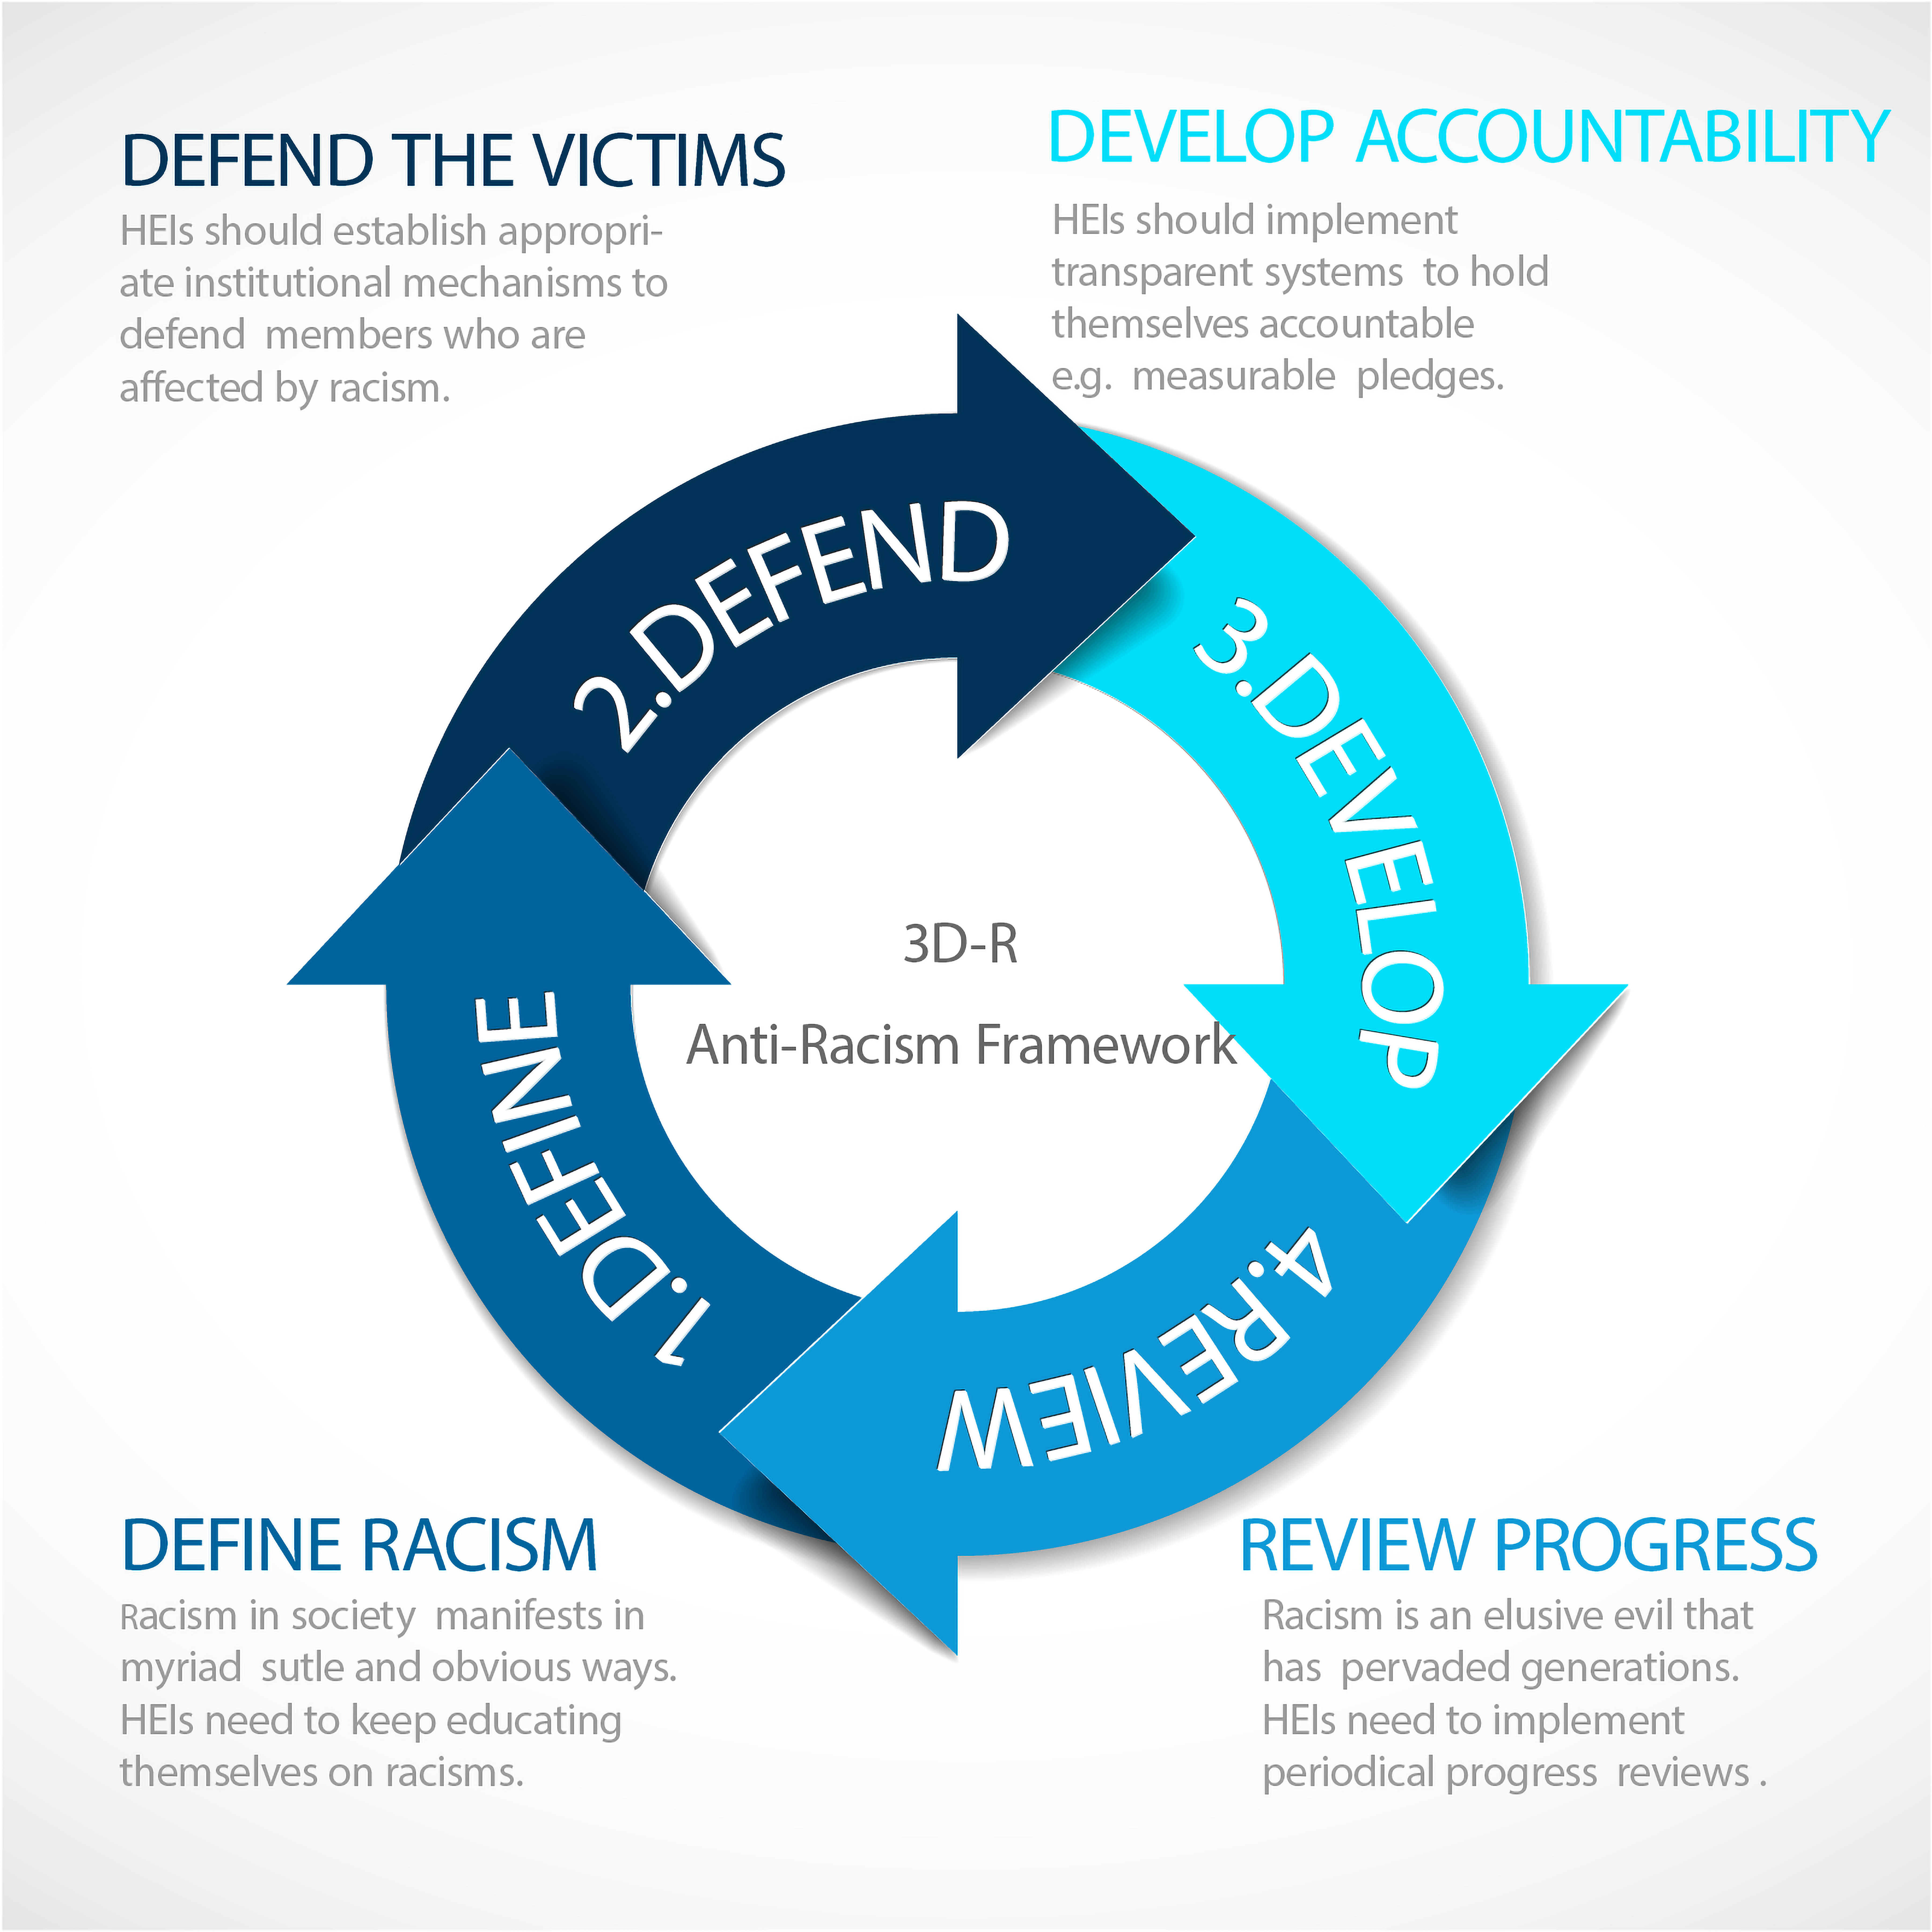 The 3D-R framework for confronting racism